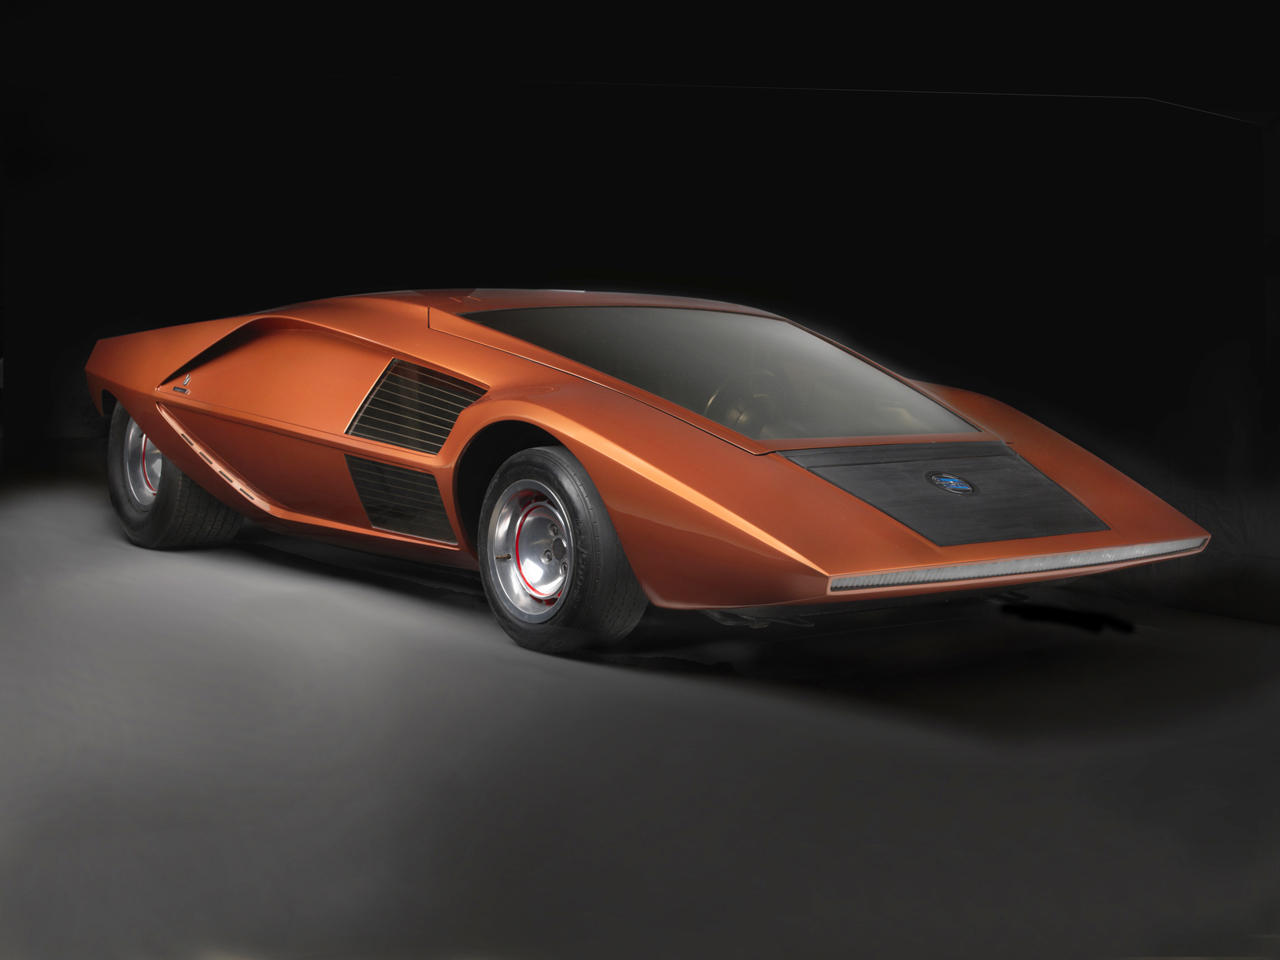 Lancia Bellissima Stunning Italian Car Designs Pictures Cbs News